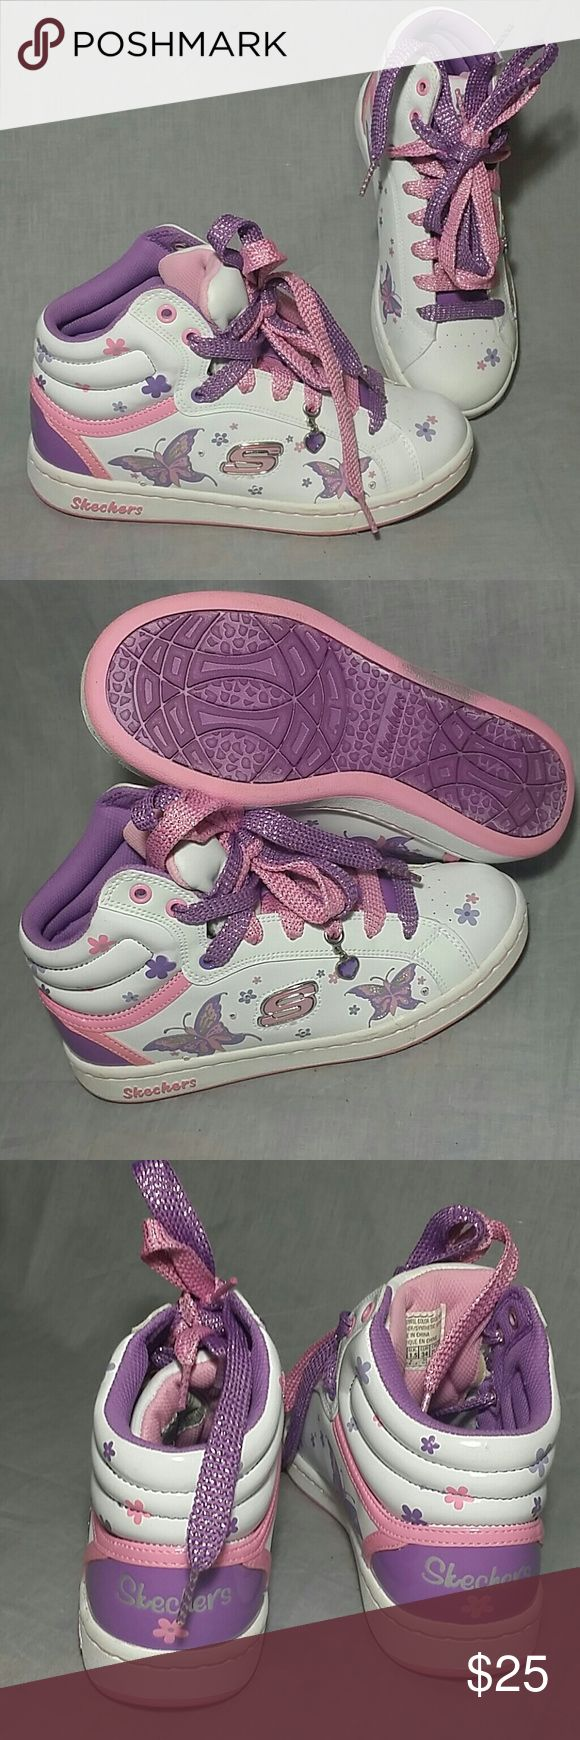 Girls High Top Skechers Shoes 2.5 Youth Lace ups Girls Shoes Leather / synthetic upper Item just like new. (Please check my bundle discount thanks for visiting). Skechers Shoes